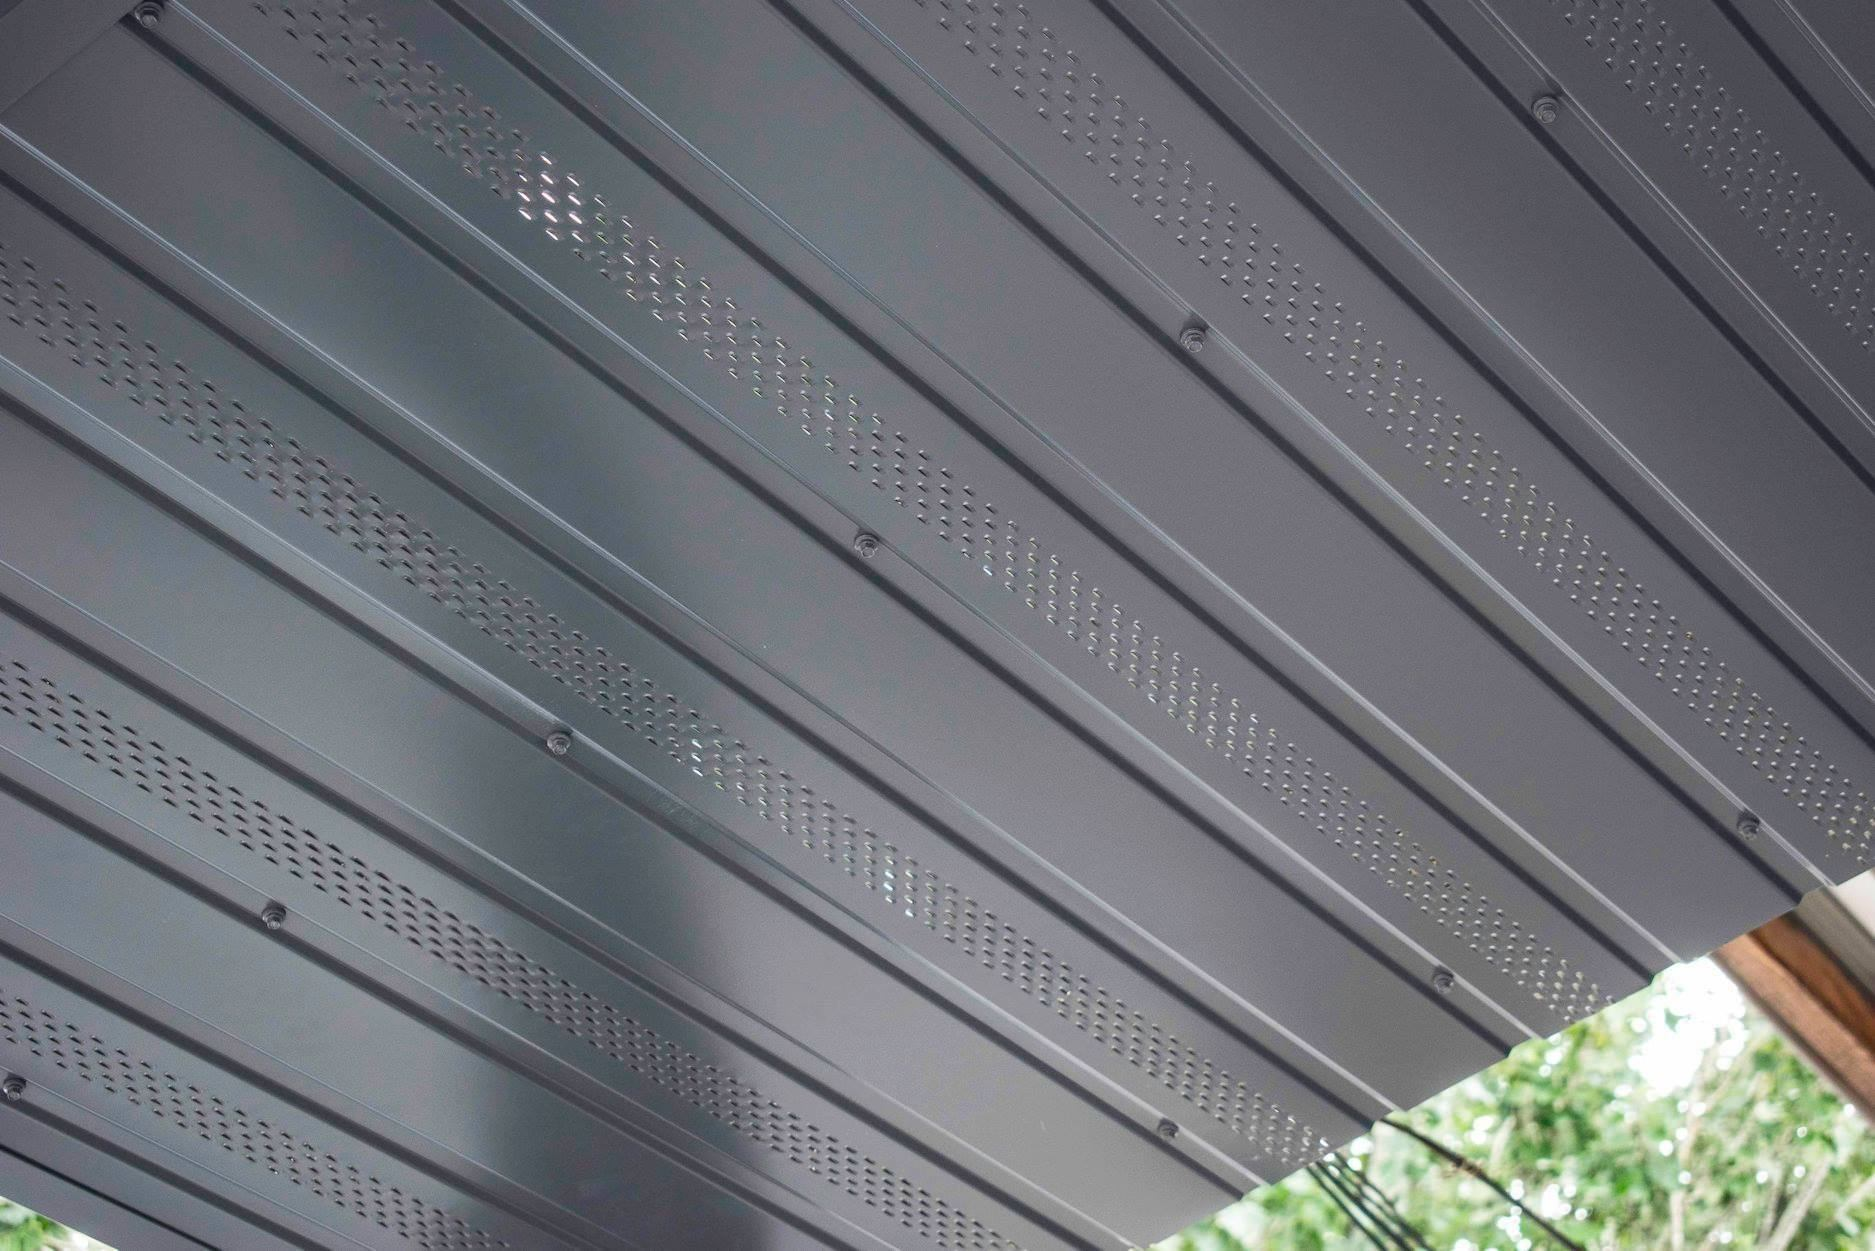 Perforations for better ventilation